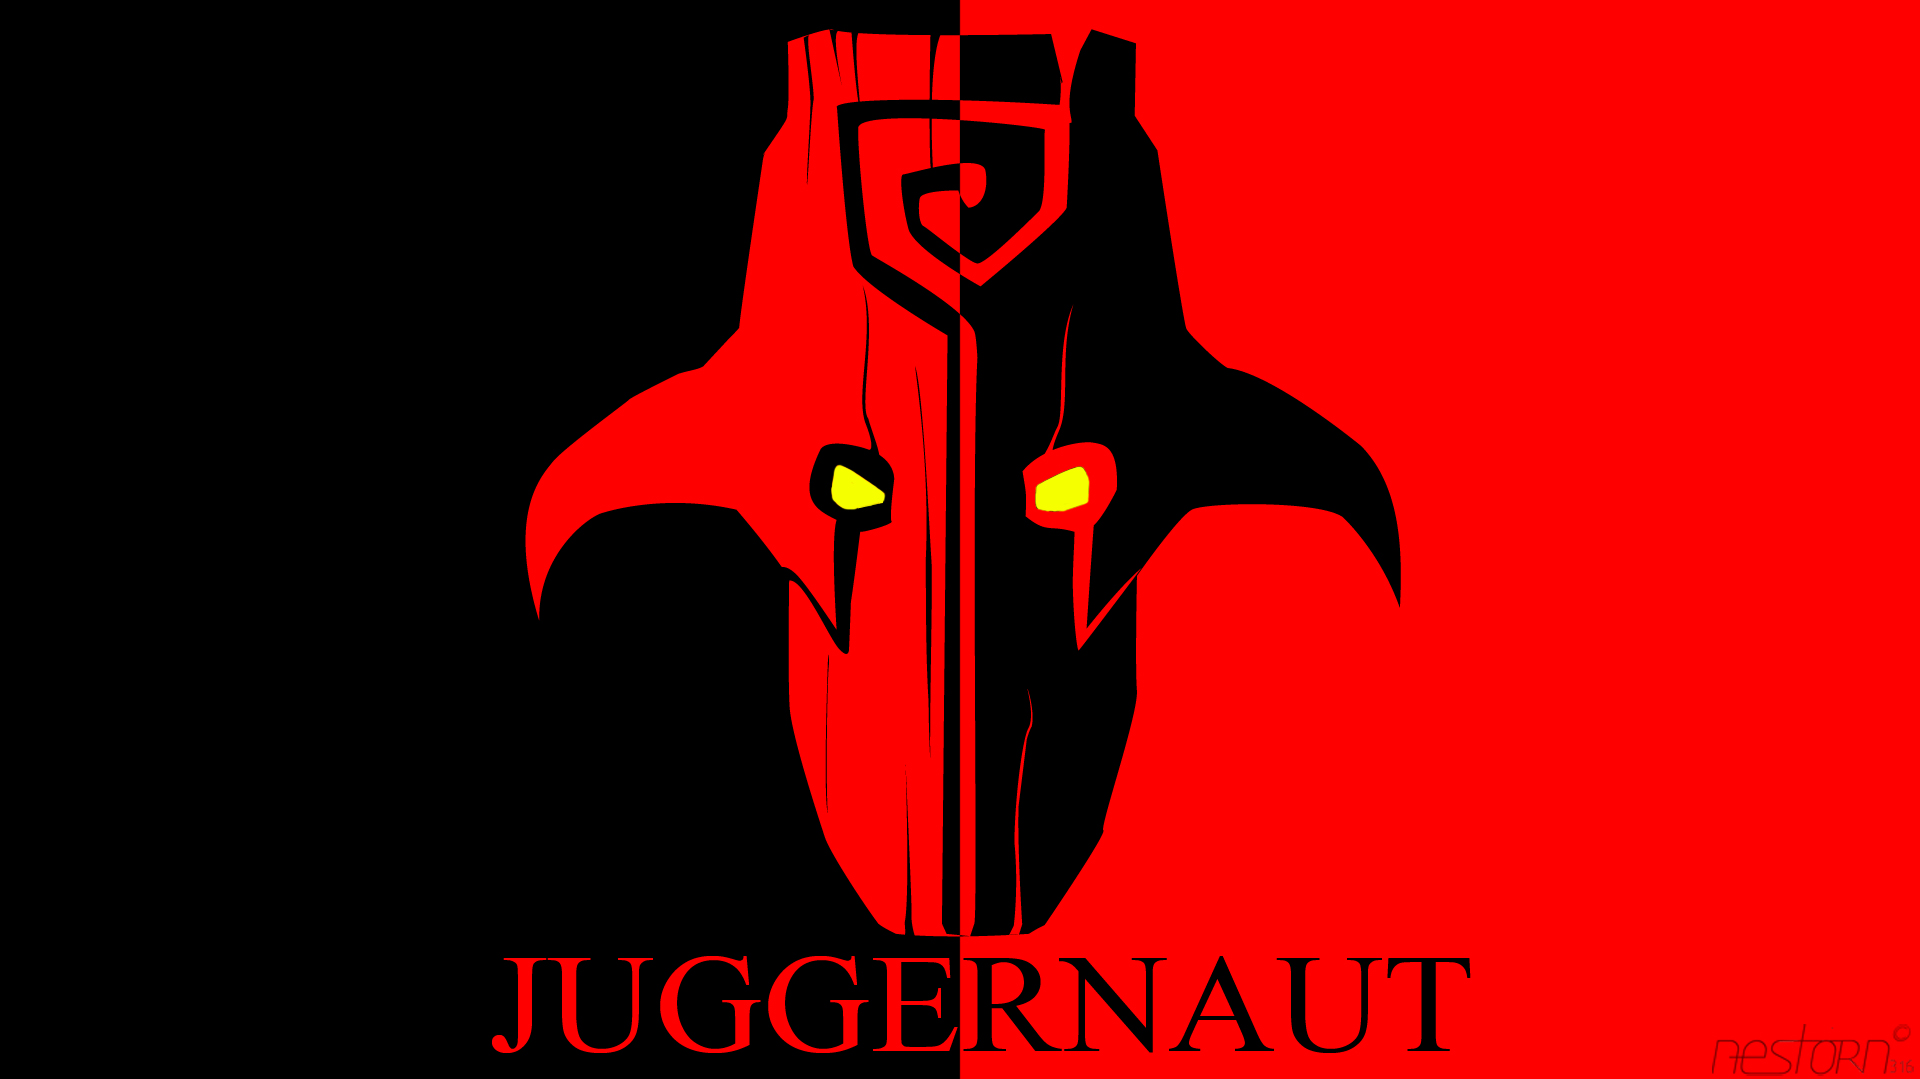 Yurnero The Juggernaut Wallpaper By Nestorn316